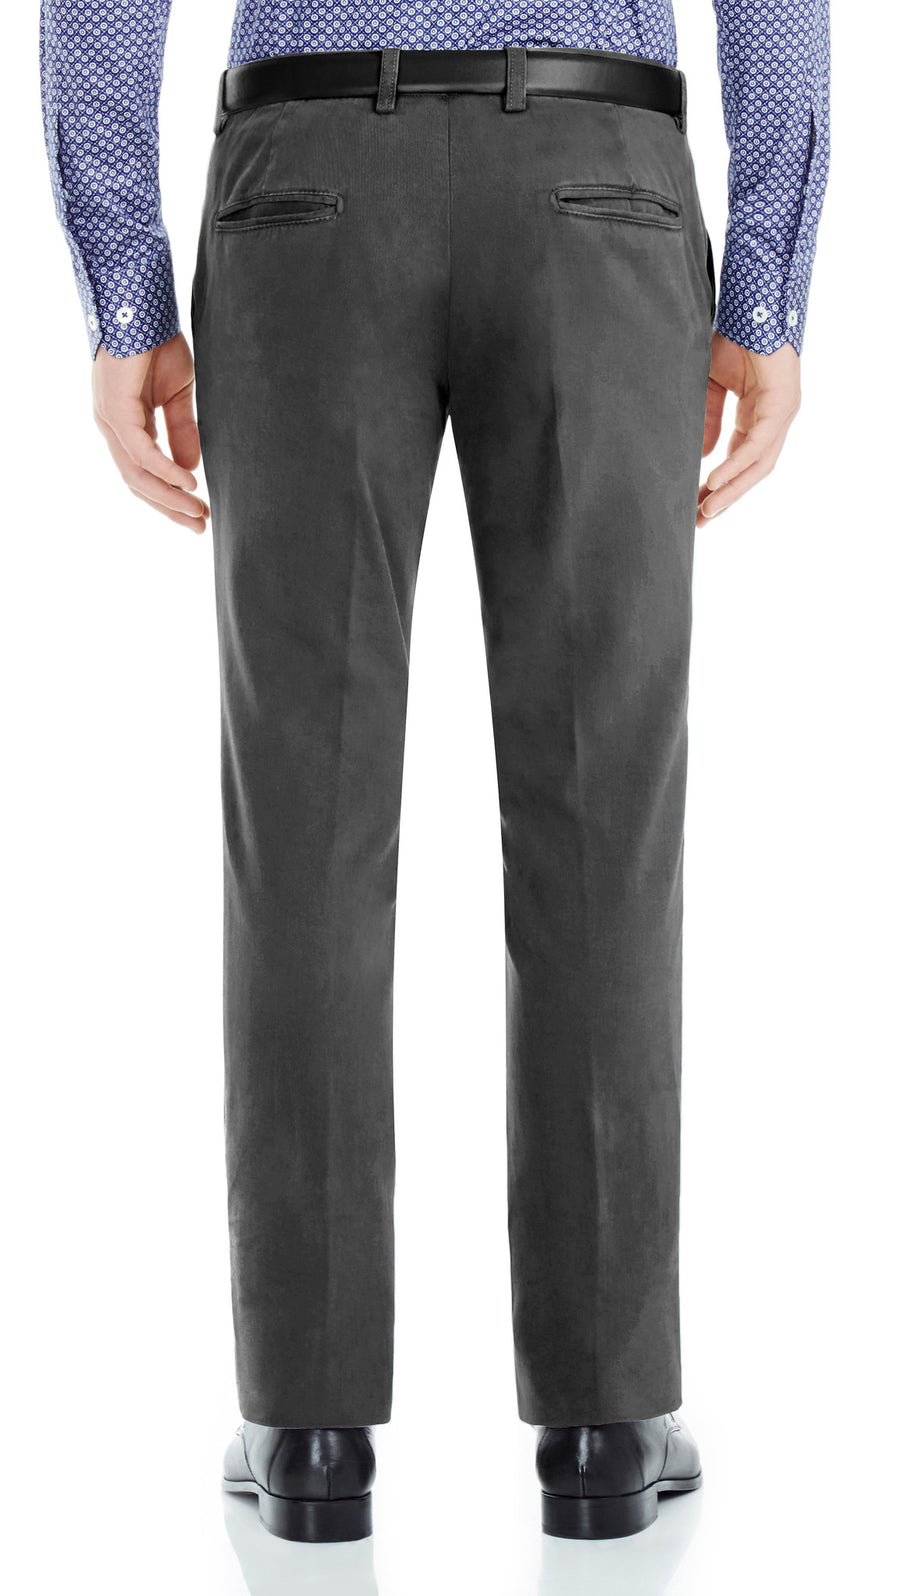 Bennett Italian made Cotton Chino in Buio